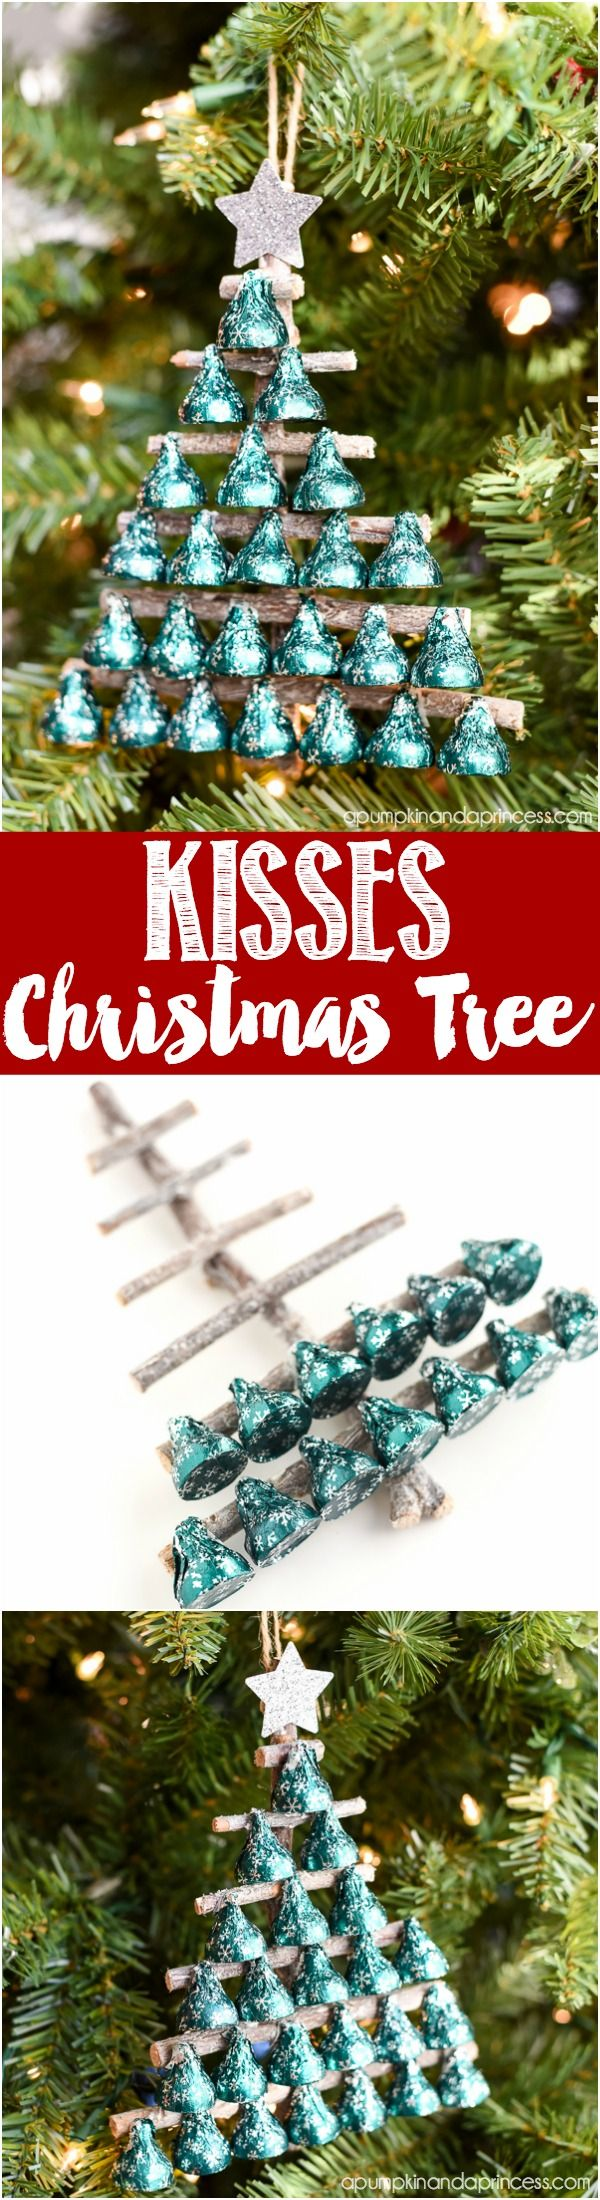 DIY KISSES Candy Christmas Tree - cute neighbor gift or teacher gift idea kids can make.